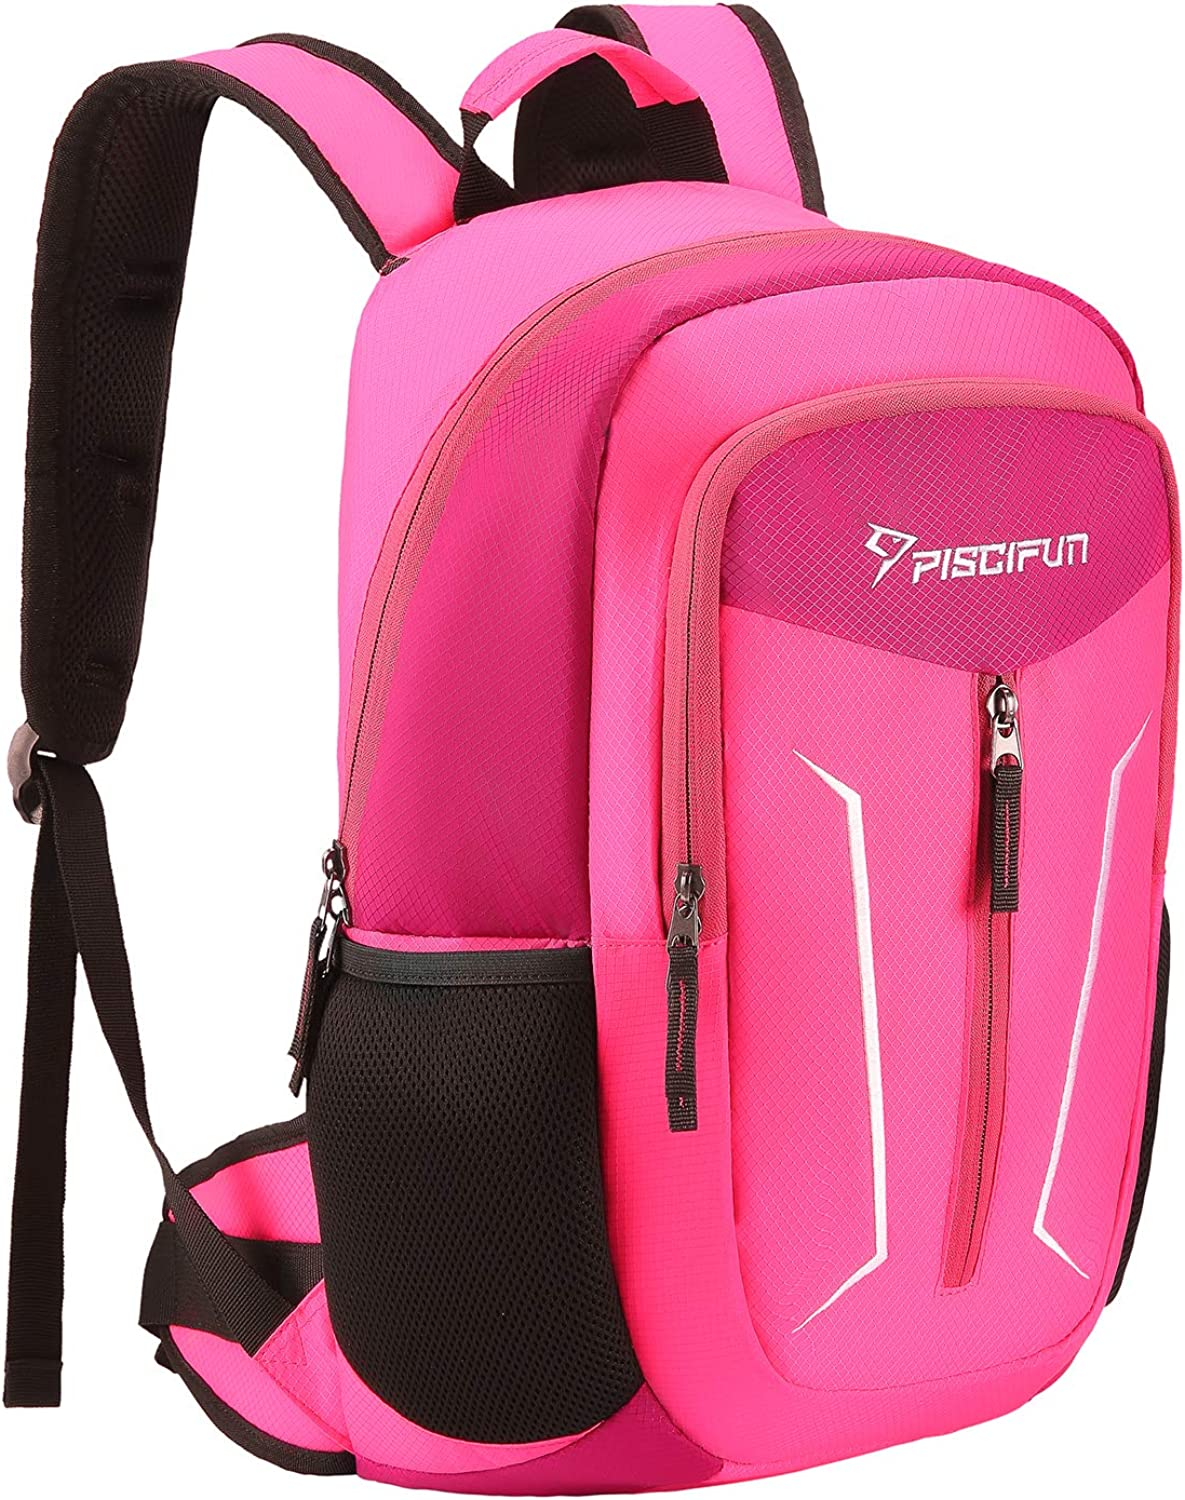 Piscifun Cooler Backpack - Leakproof Insulated Cooler Bag - Soft Lightweight Backpack Cooler for Men & Women - Keeps Food and Drinks Cold - for Picnic, Fishing, Hiking, Camping, Beach, Park, Day Trip